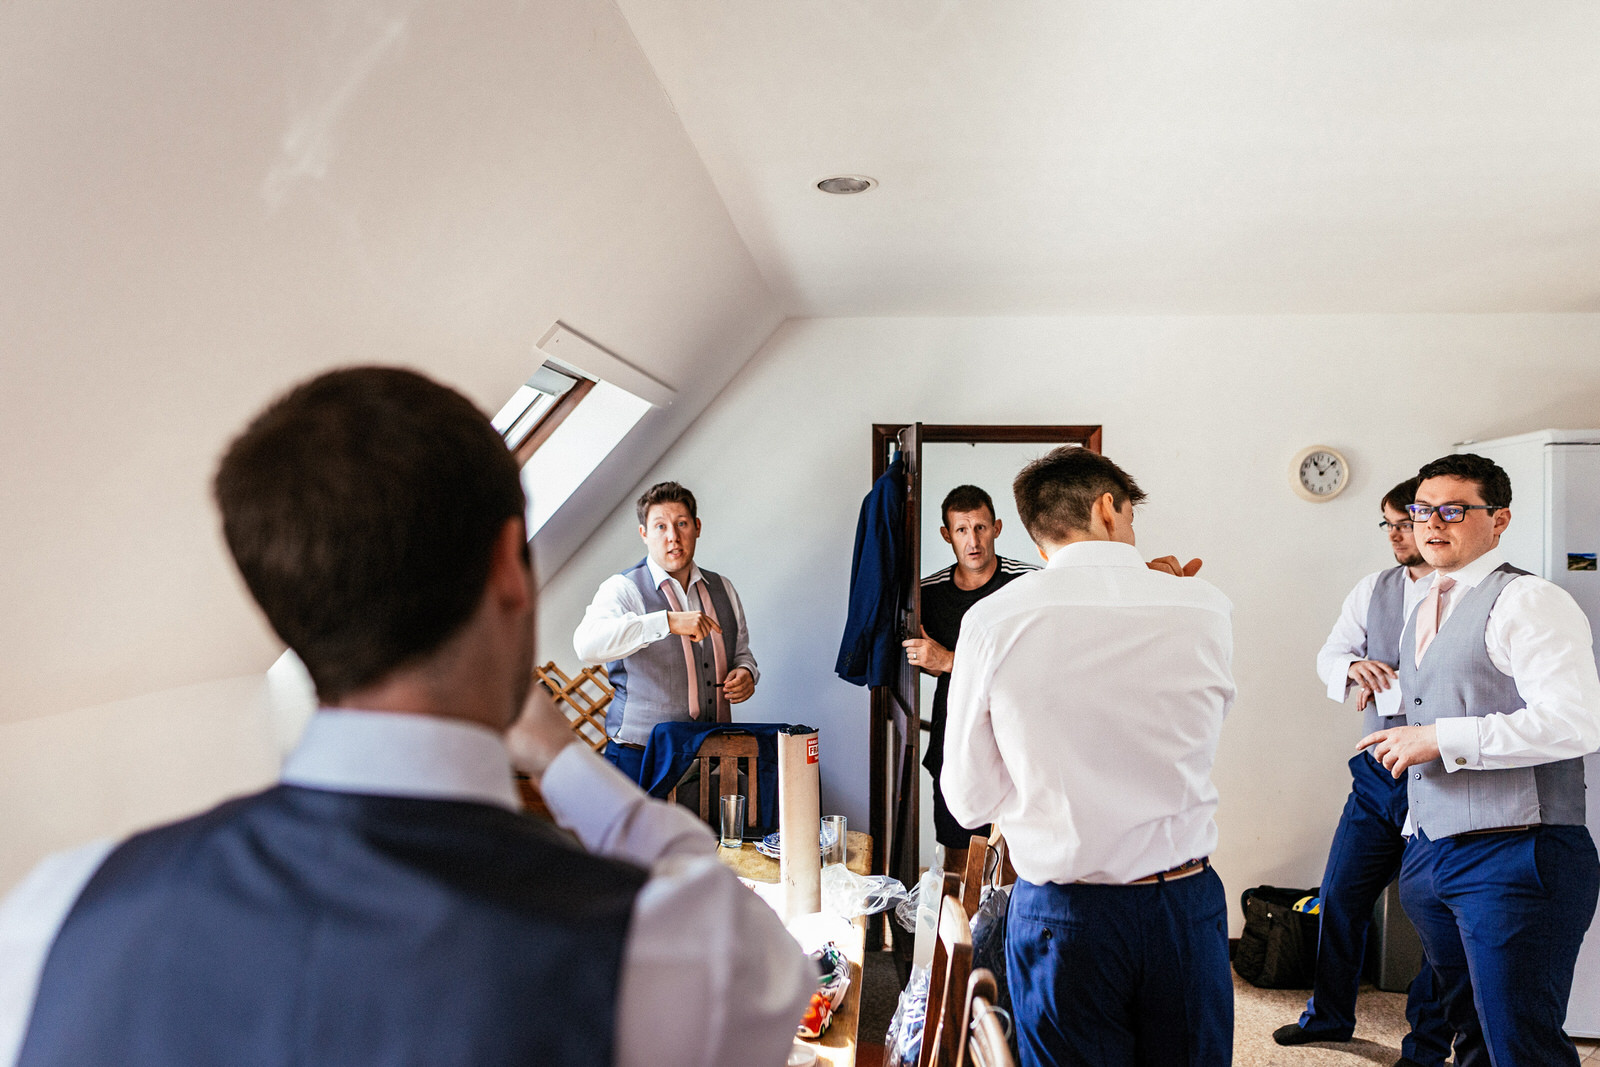 Winkworth-Farm-Wedding-Photographer-005.jpg